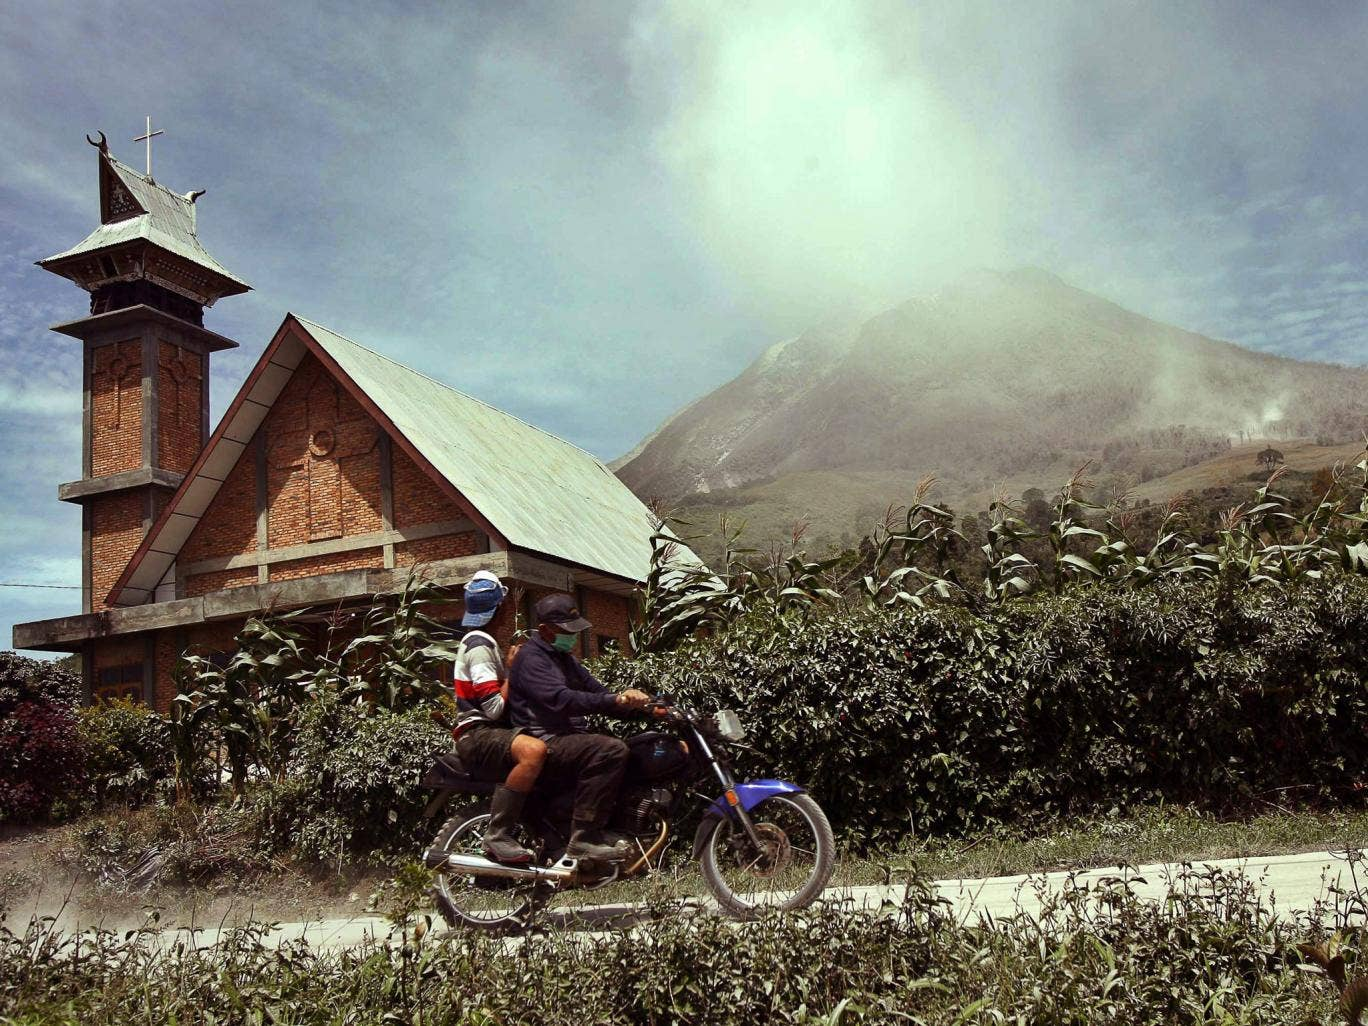 Indonesian villagers ride a motorbike as Mount Sinabung spews hot gas and ashes in the background during an eruption in Karo, North Sumatra province,  Indonesia